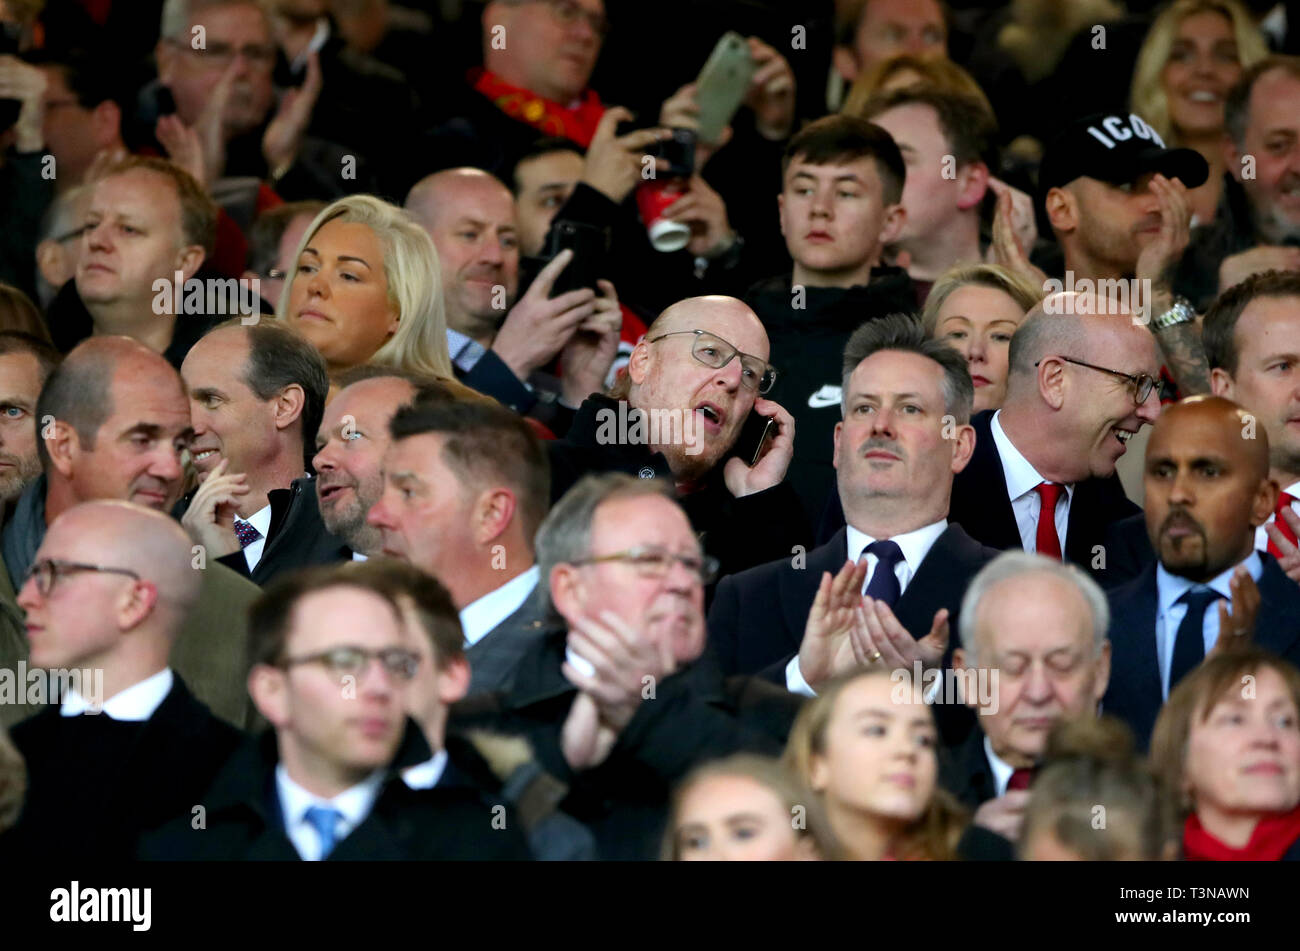 Manchester United Owner Avram Glazer Centre During The Uefa Champions League Quarter Final First Leg Match At Old Trafford Manchester Stock Photo Alamy